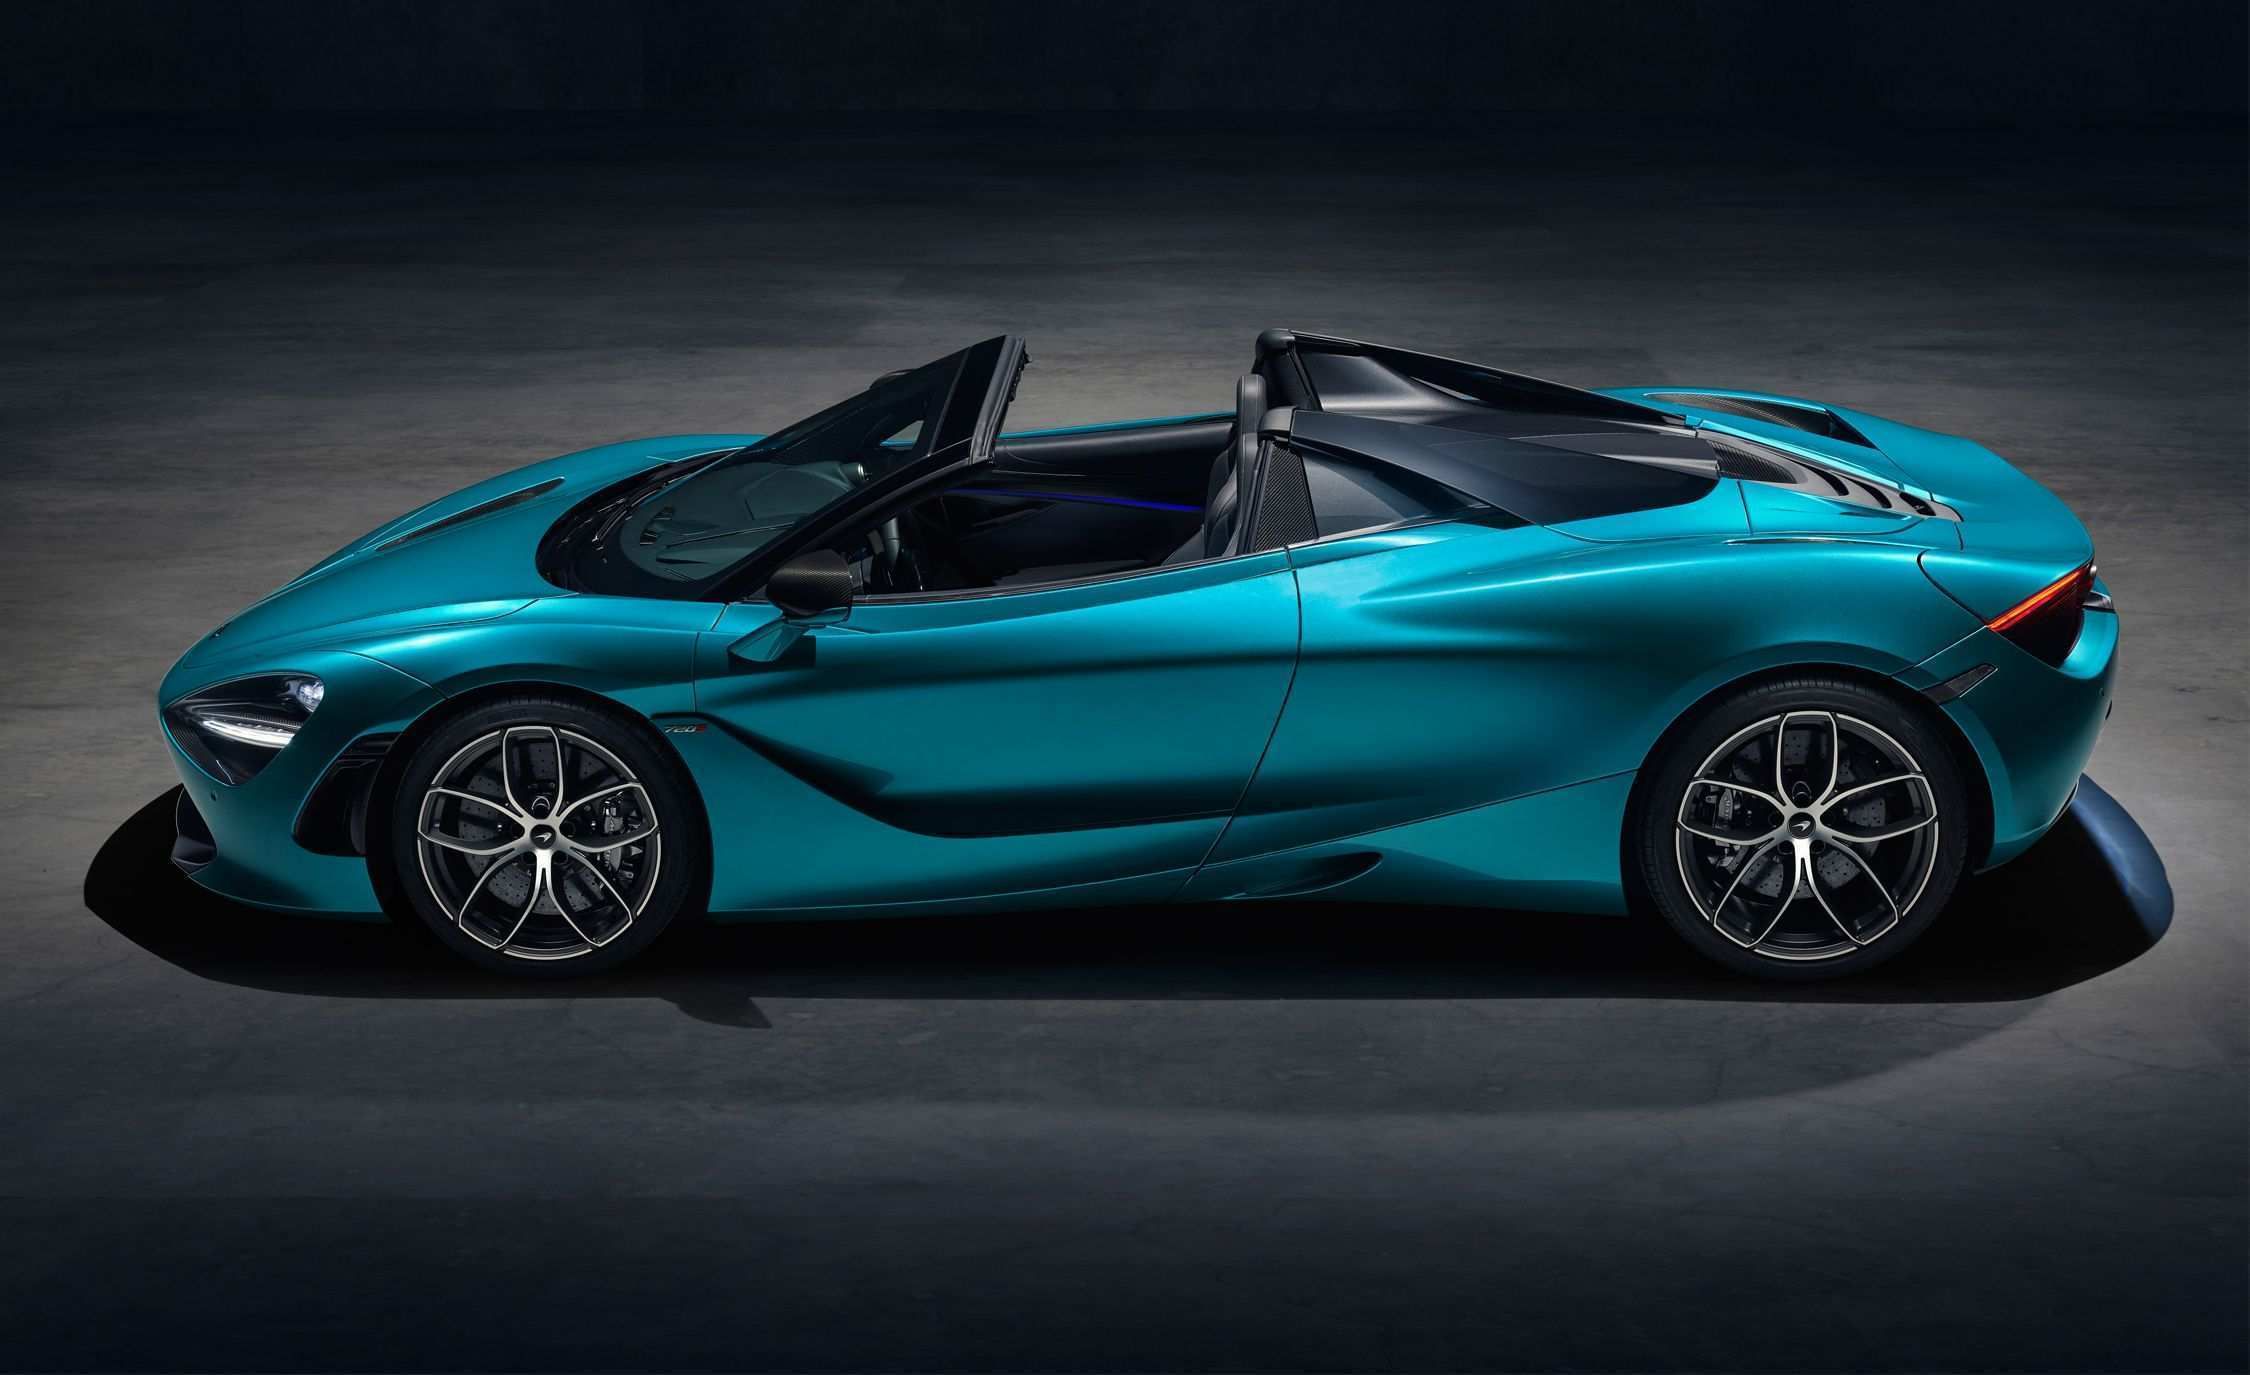 40 New 2019 Mclaren 720S Spider Spy Shoot by 2019 Mclaren 720S Spider